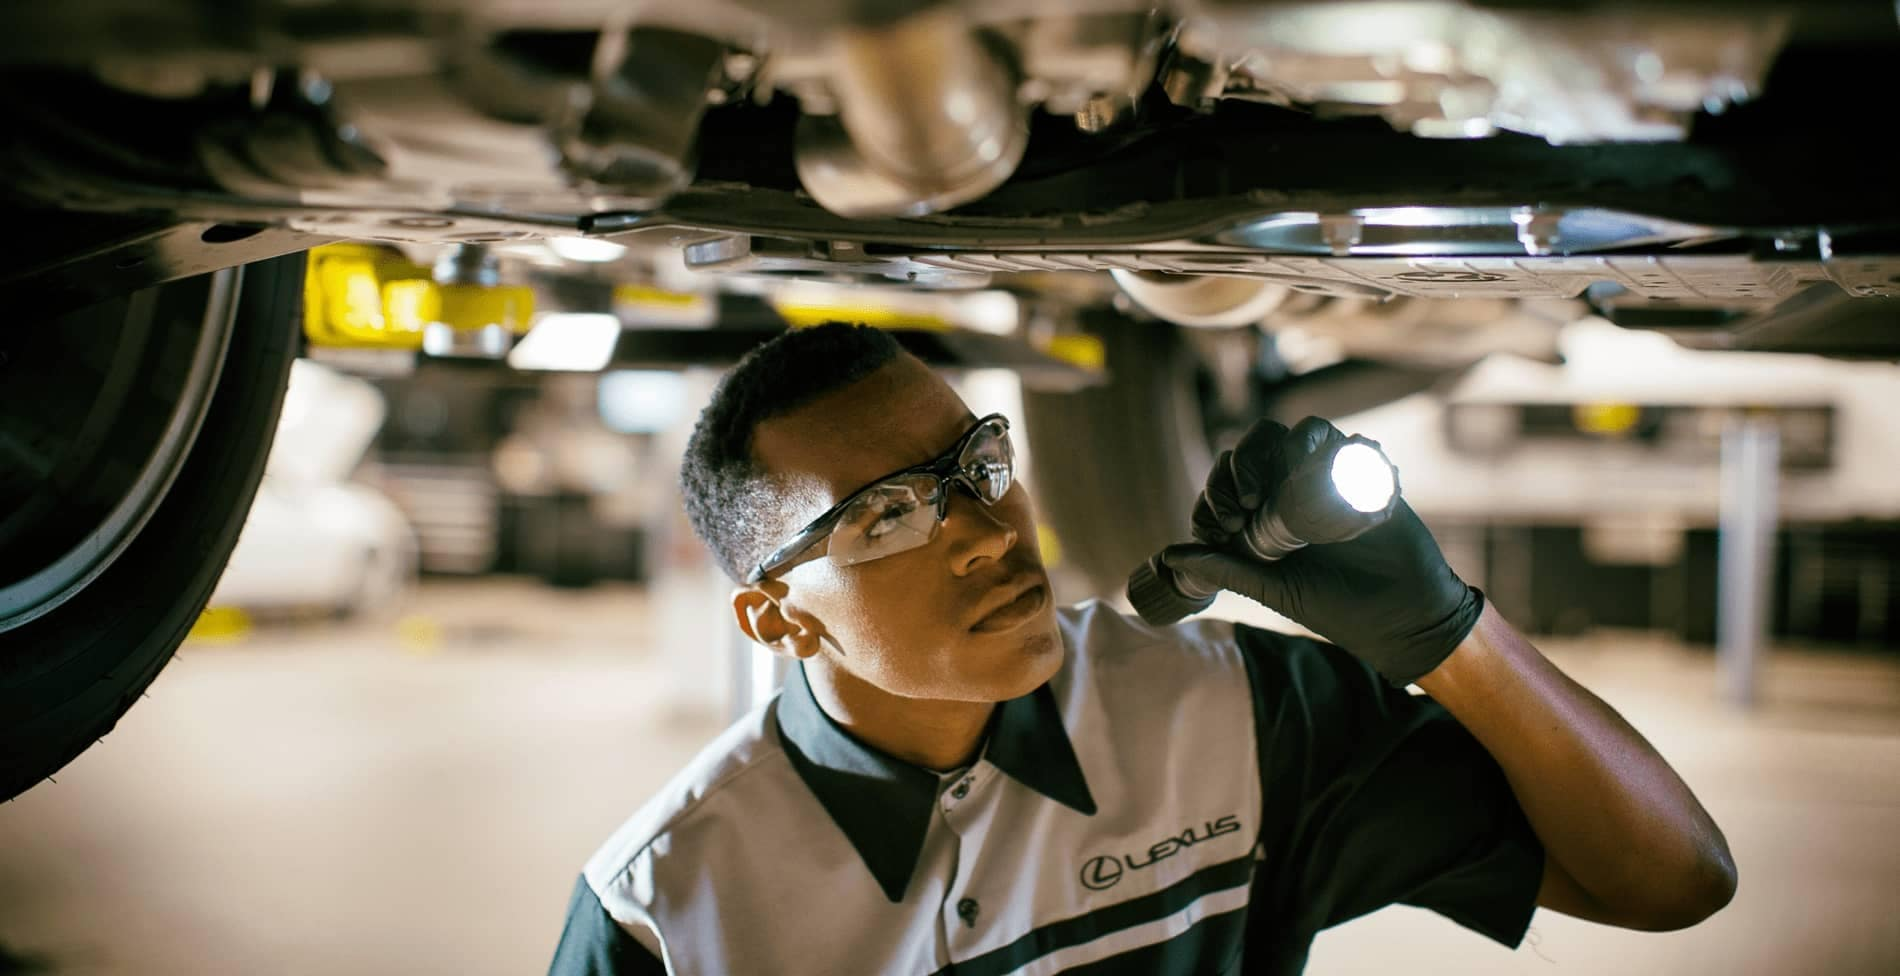 A Service Technician looking at the underneath of a car with a flashlight.